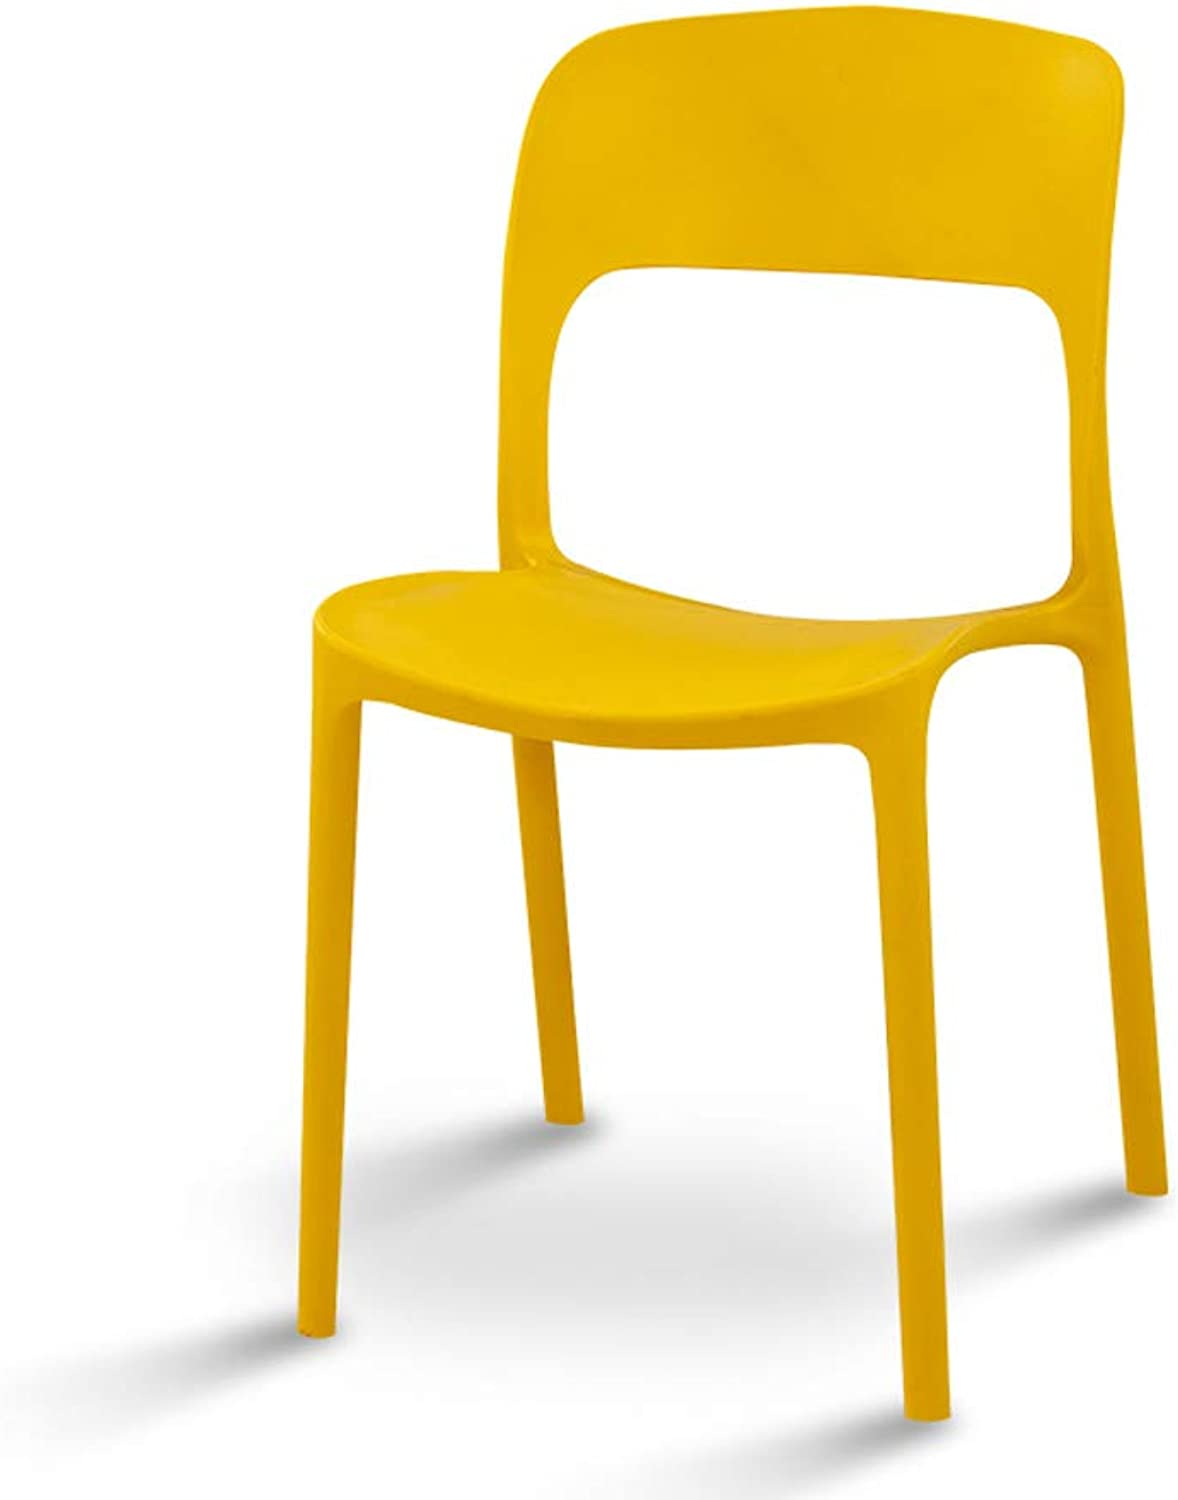 Simple Nordic Plastic Dining Table and Chairs Home Meeting to Discuss Training Chairs Restaurant Lounge Chair Computer Chair Yellow